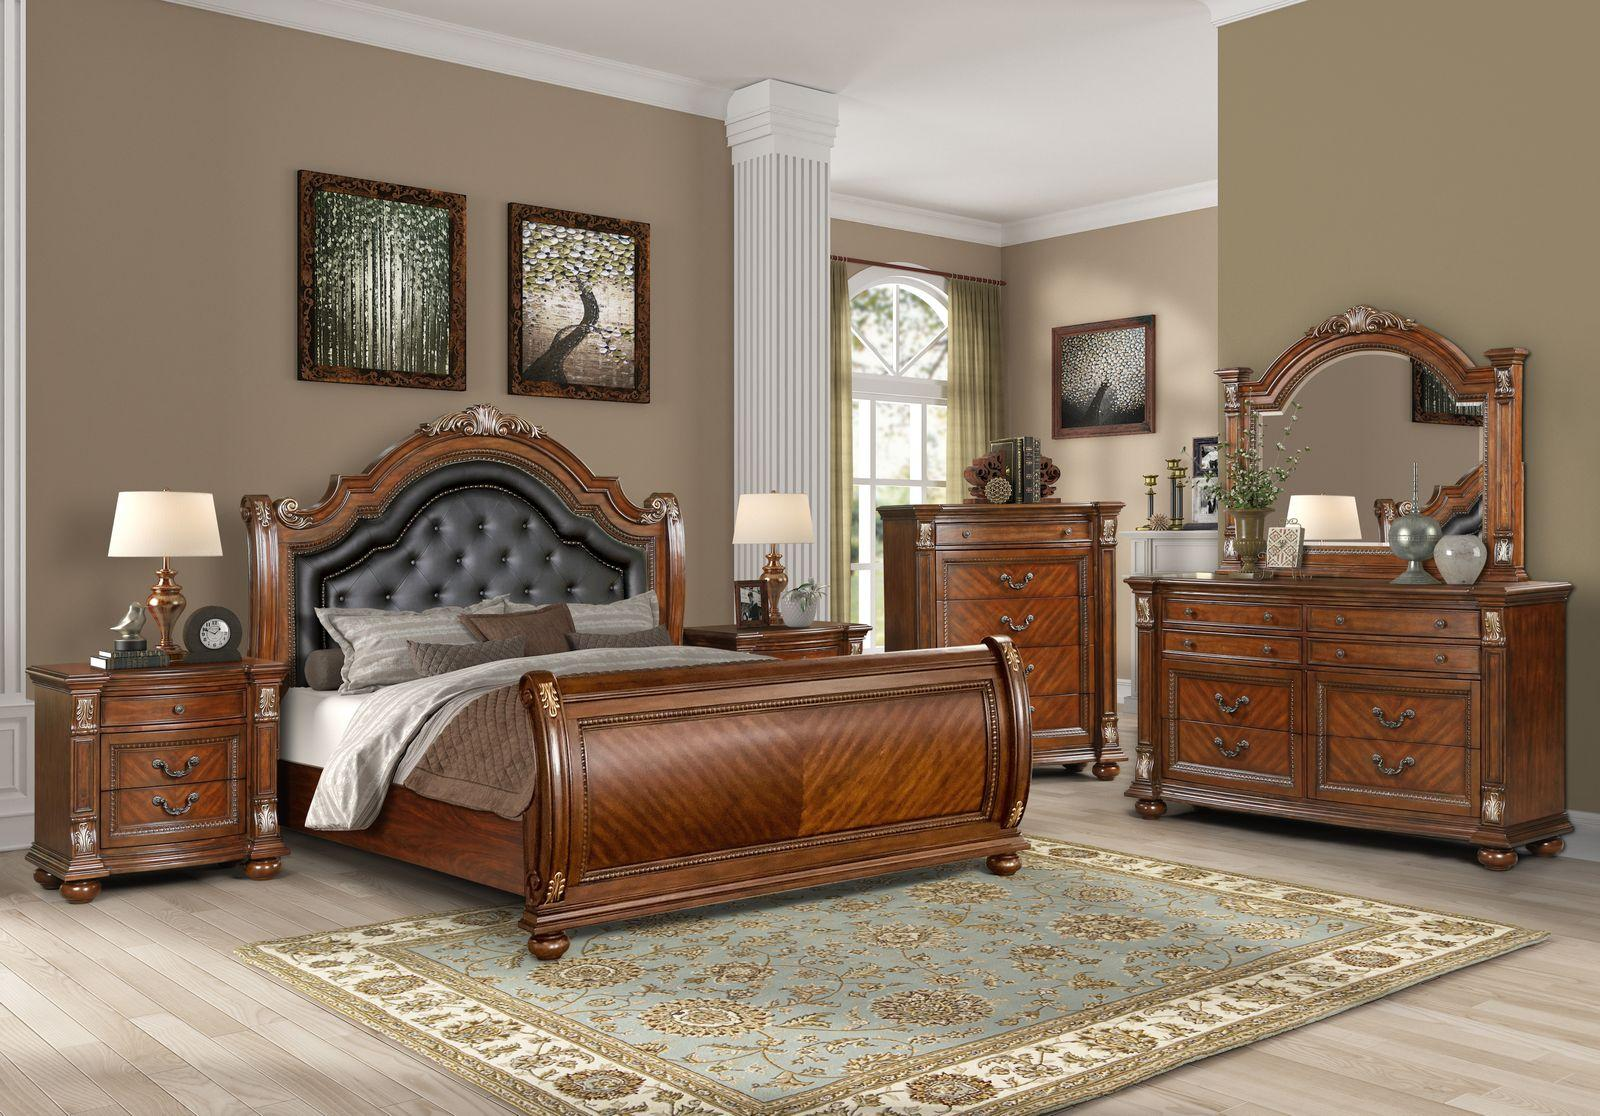 Traditional Caramel  and Wood King Sleigh Bedroom Set 6 pcs Viviana by Cosmos Furniture